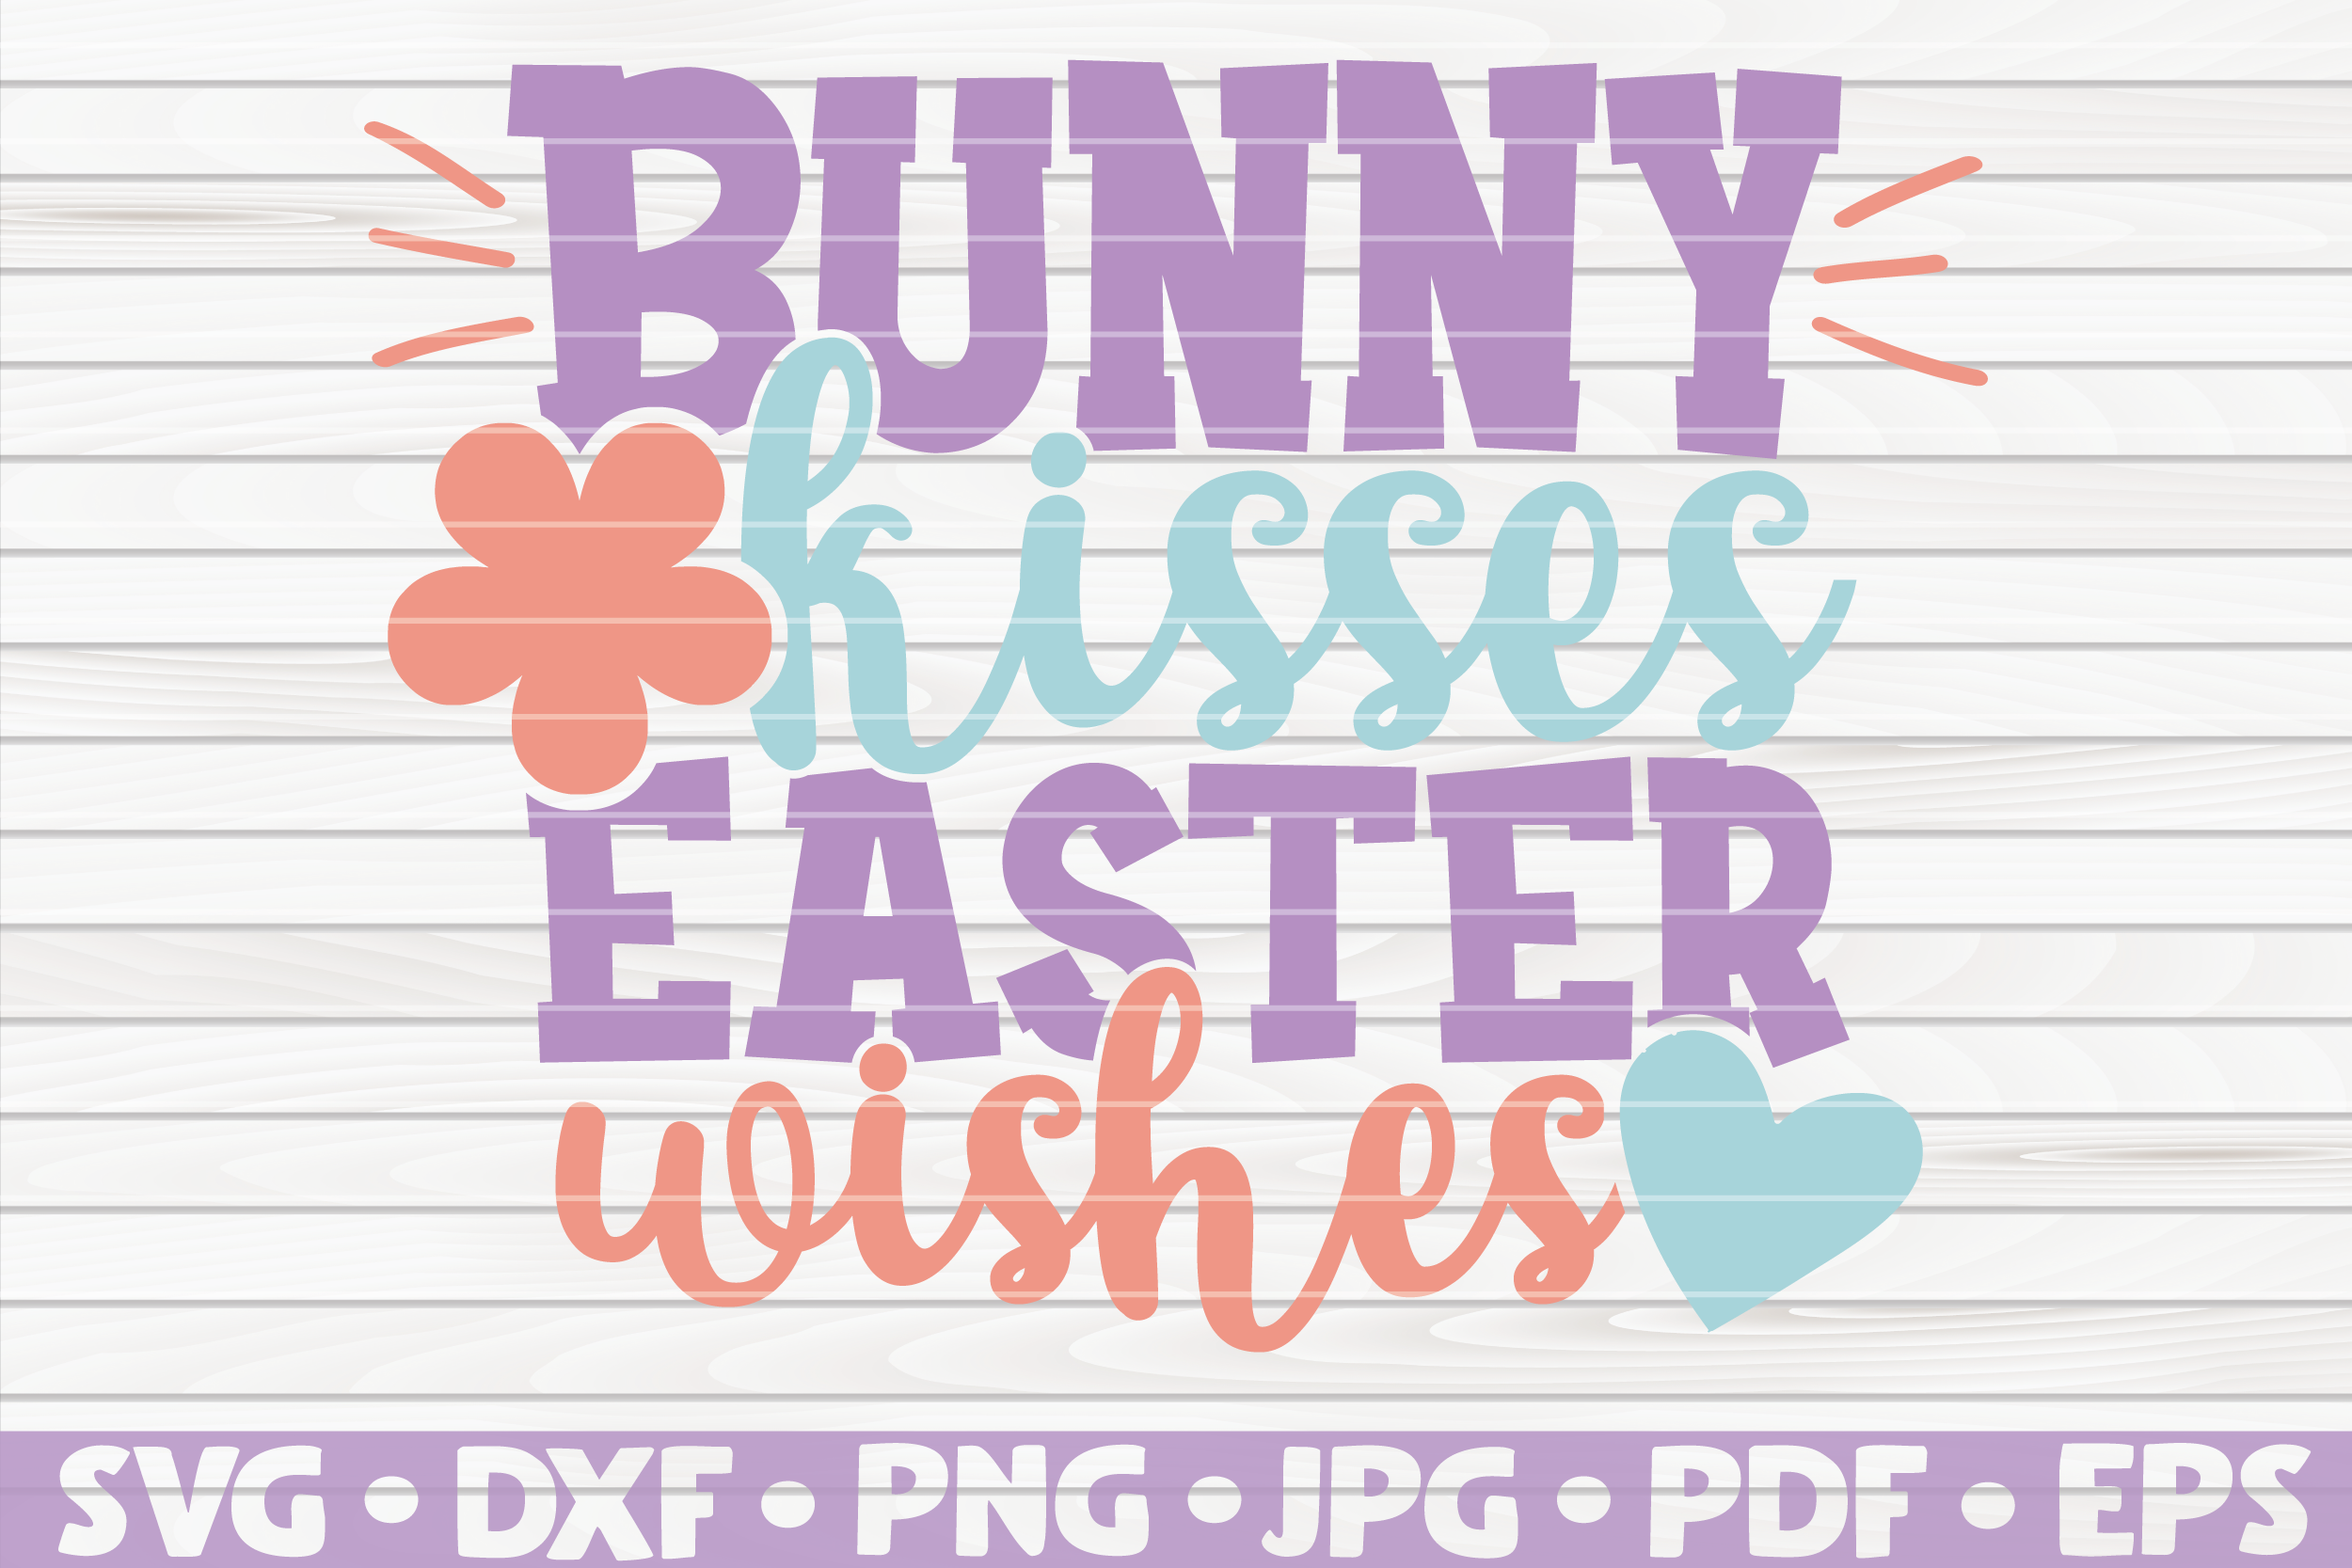 Download Free Bunny Kisses Easter Wishes Vector Graphic By Mihaibadea95 for Cricut Explore, Silhouette and other cutting machines.